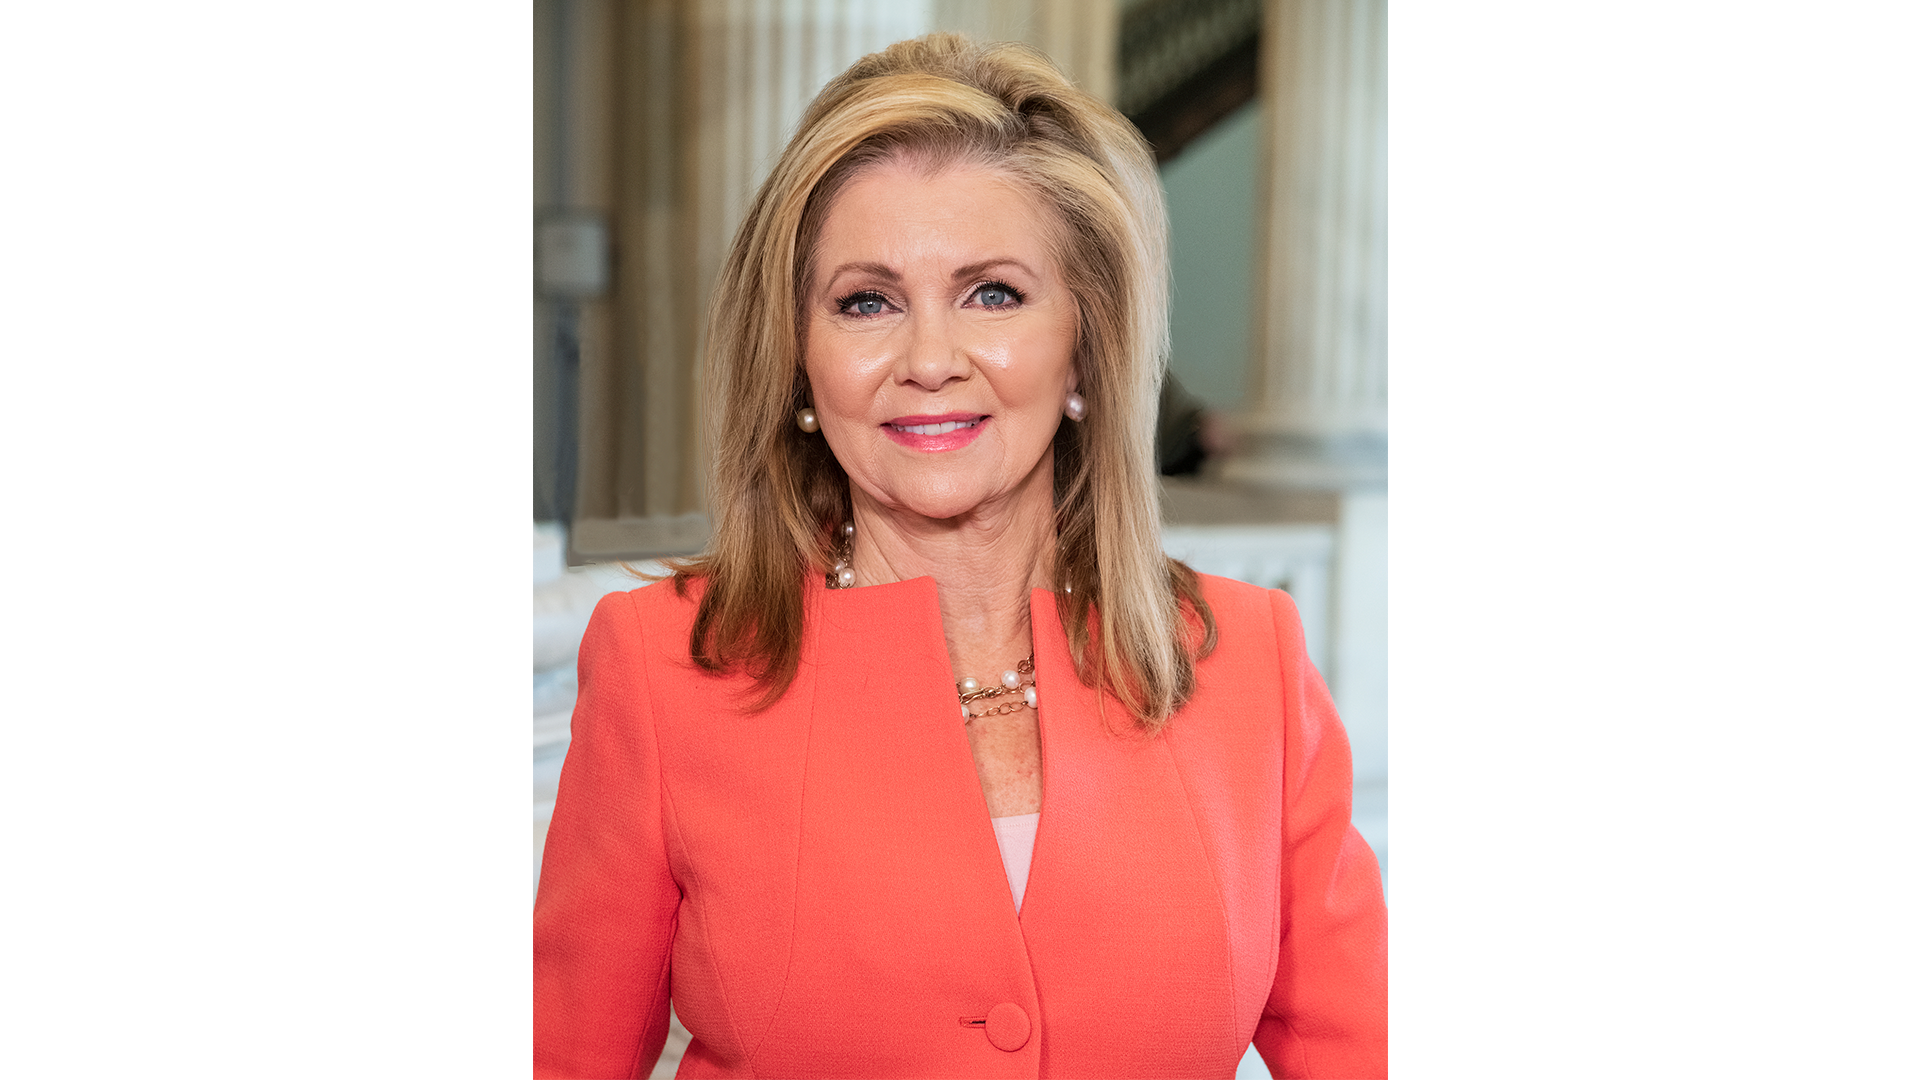 Marsha Blackburn weighs in on Democratic debates, criticizes proposals to decriminalize border crossing